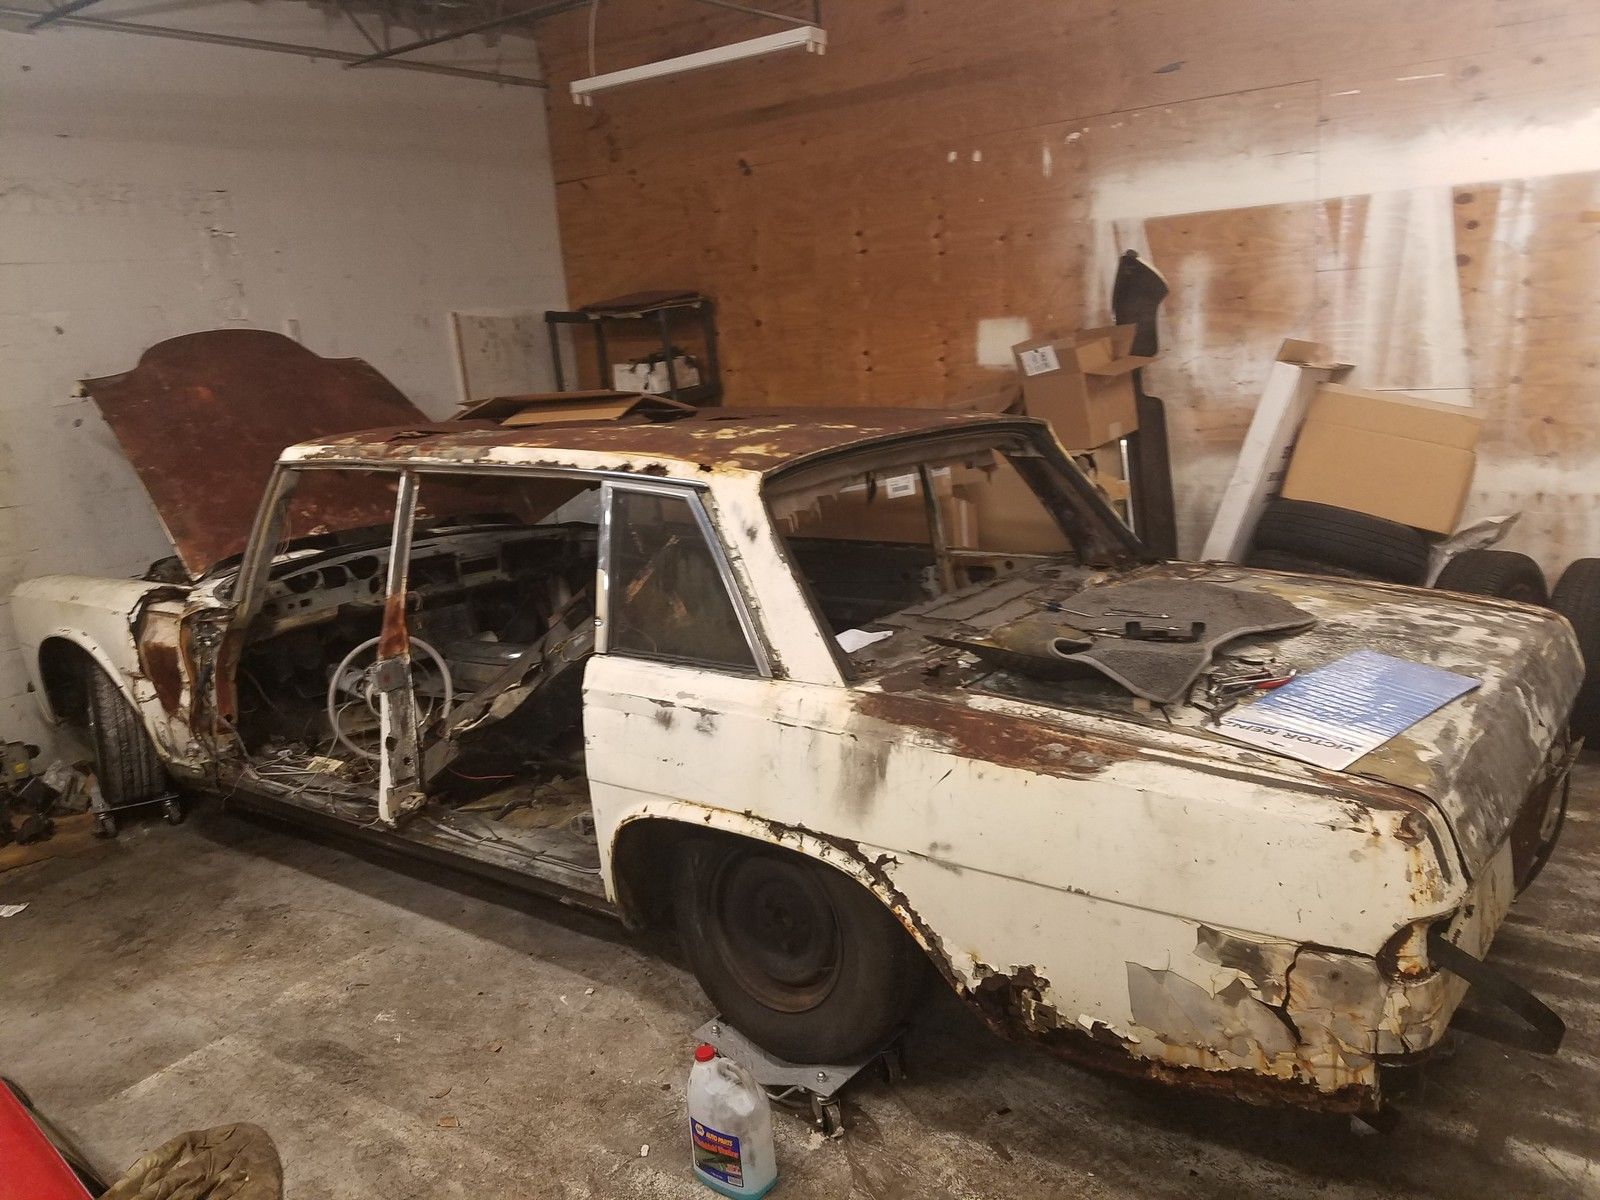 1967 mercedes benz 600 series parts or restoration project for Mercedes benz restoration parts